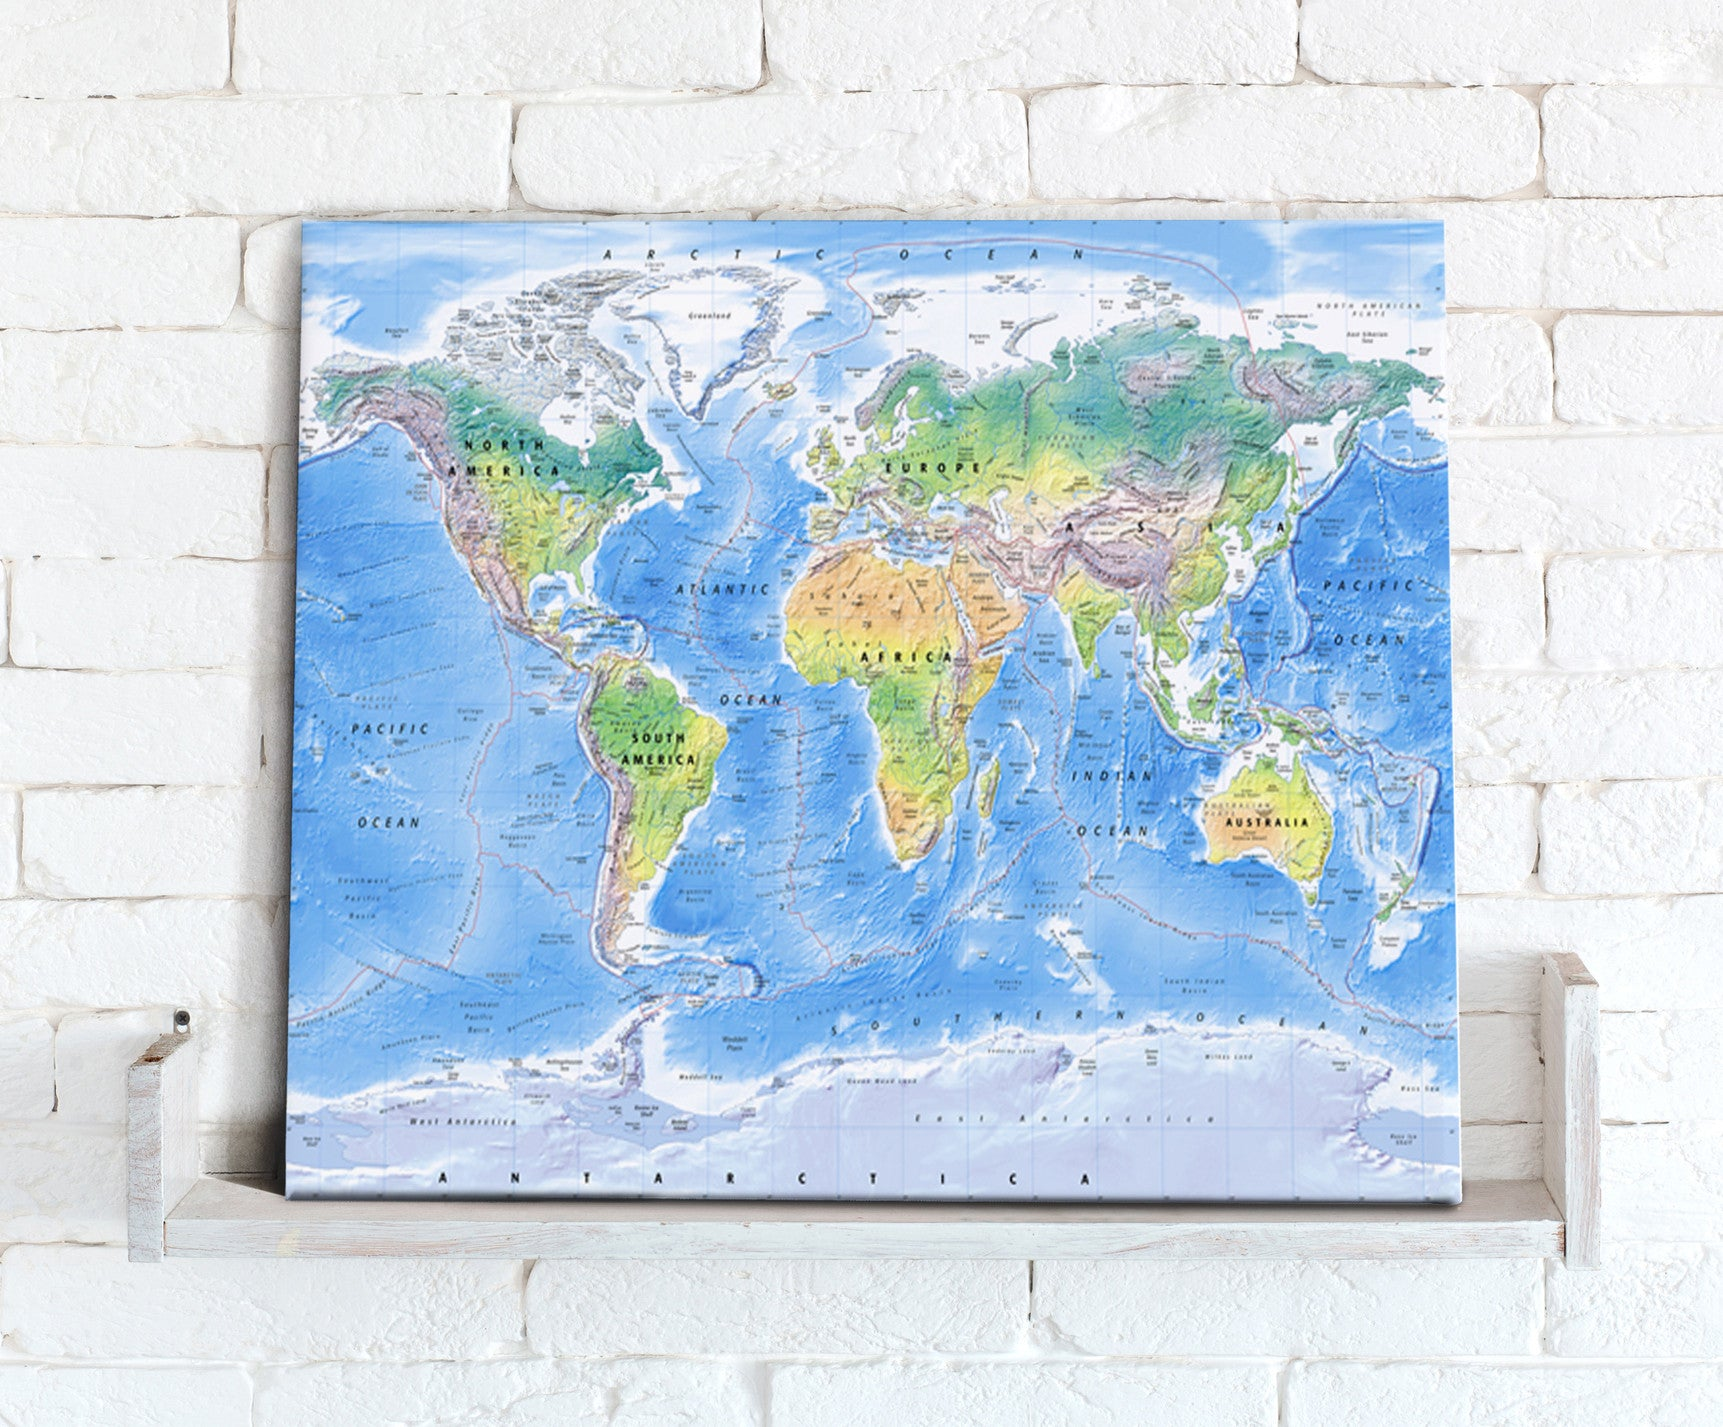 Map canvas physical world map from love maps on map canvas physical world map love maps on gumiabroncs Gallery